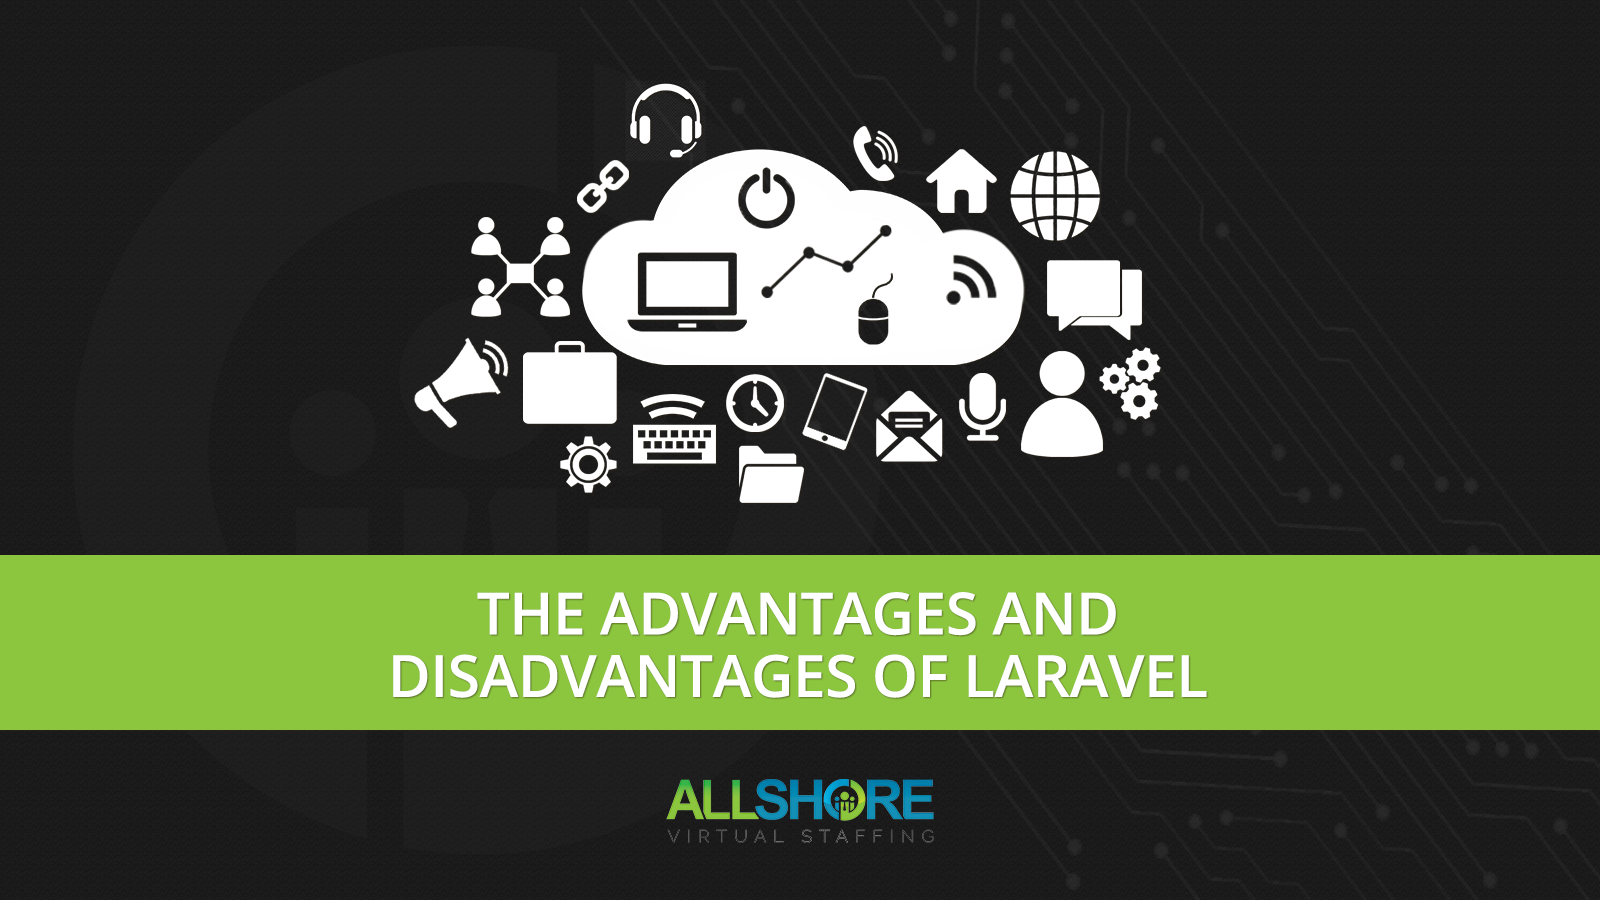 The Advantages and Disadvantages of Laravel